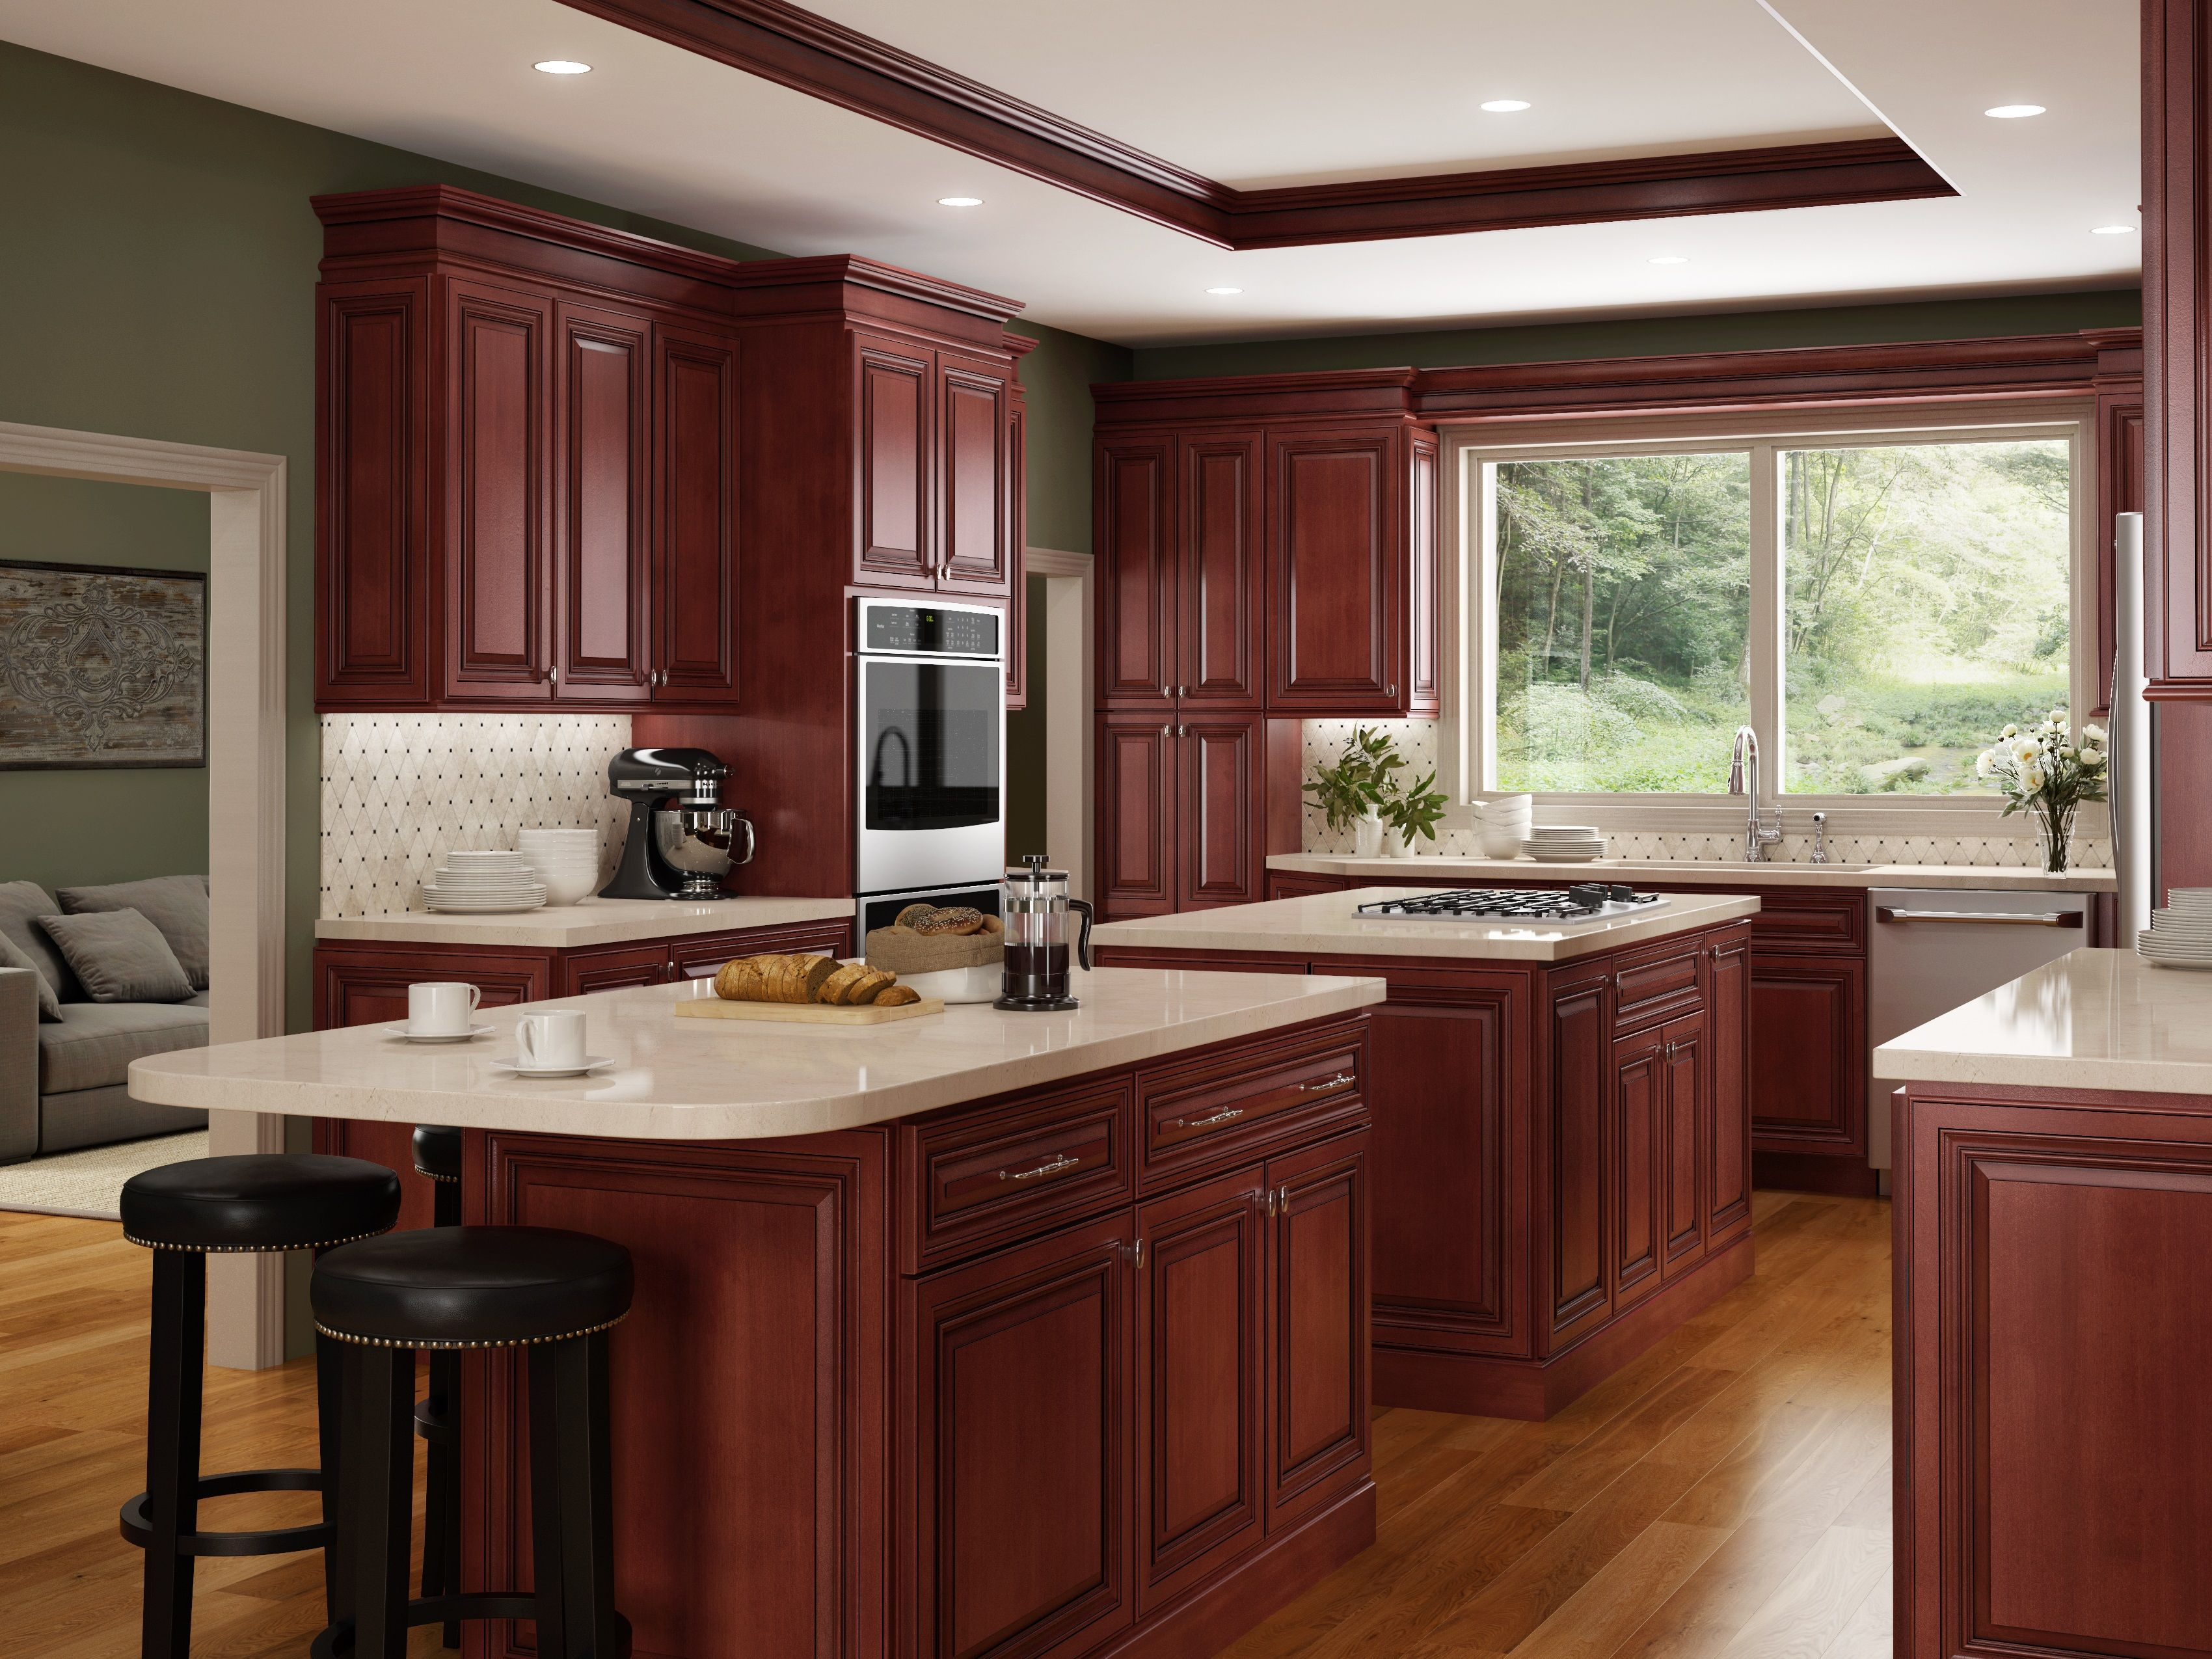 Jsi Georgetown Upscale And Stately Georgetown Delivers Gleaming Richness To Your Kitchen Solid Wood Kitchen Cabinets Kitchen Design Glazed Kitchen Cabinets